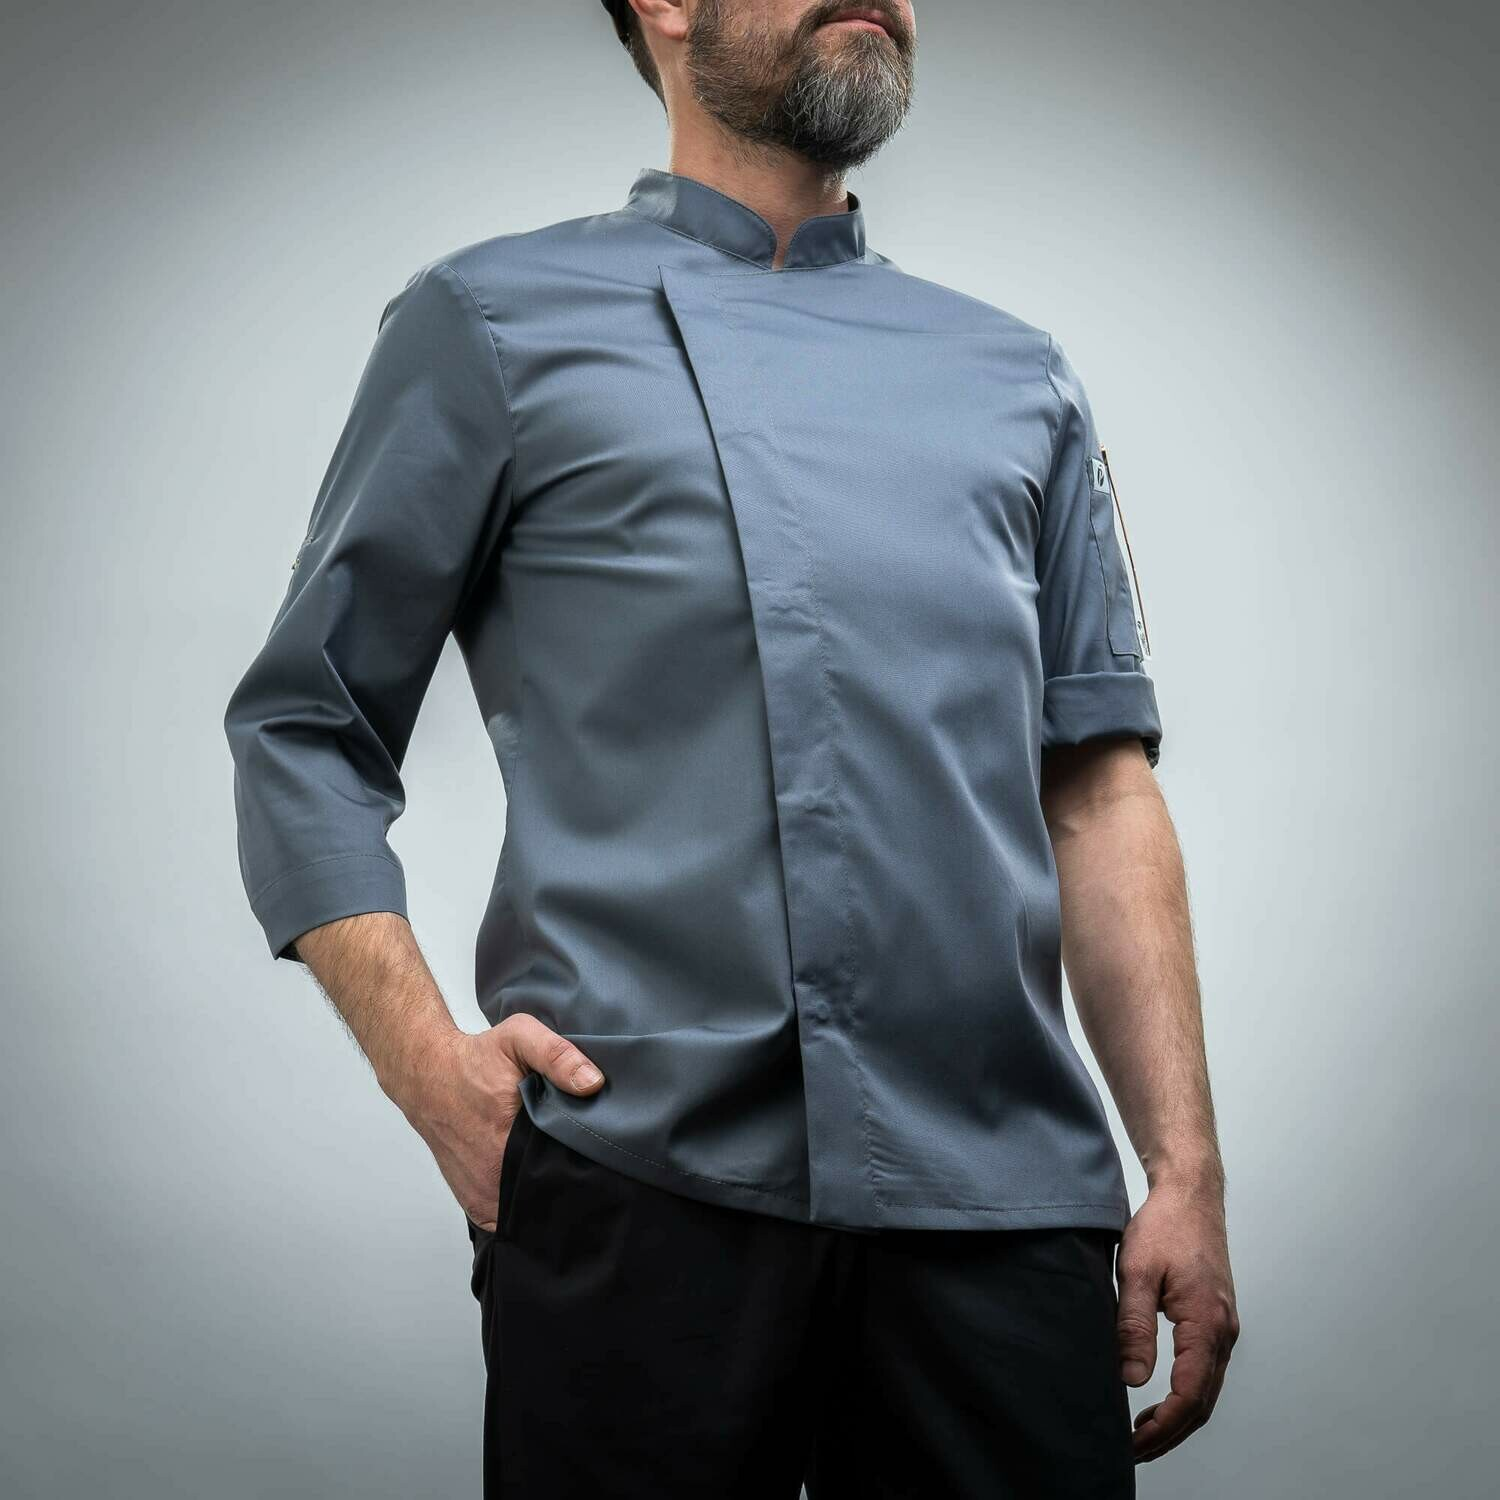 306GN - CHEF'S JACKET